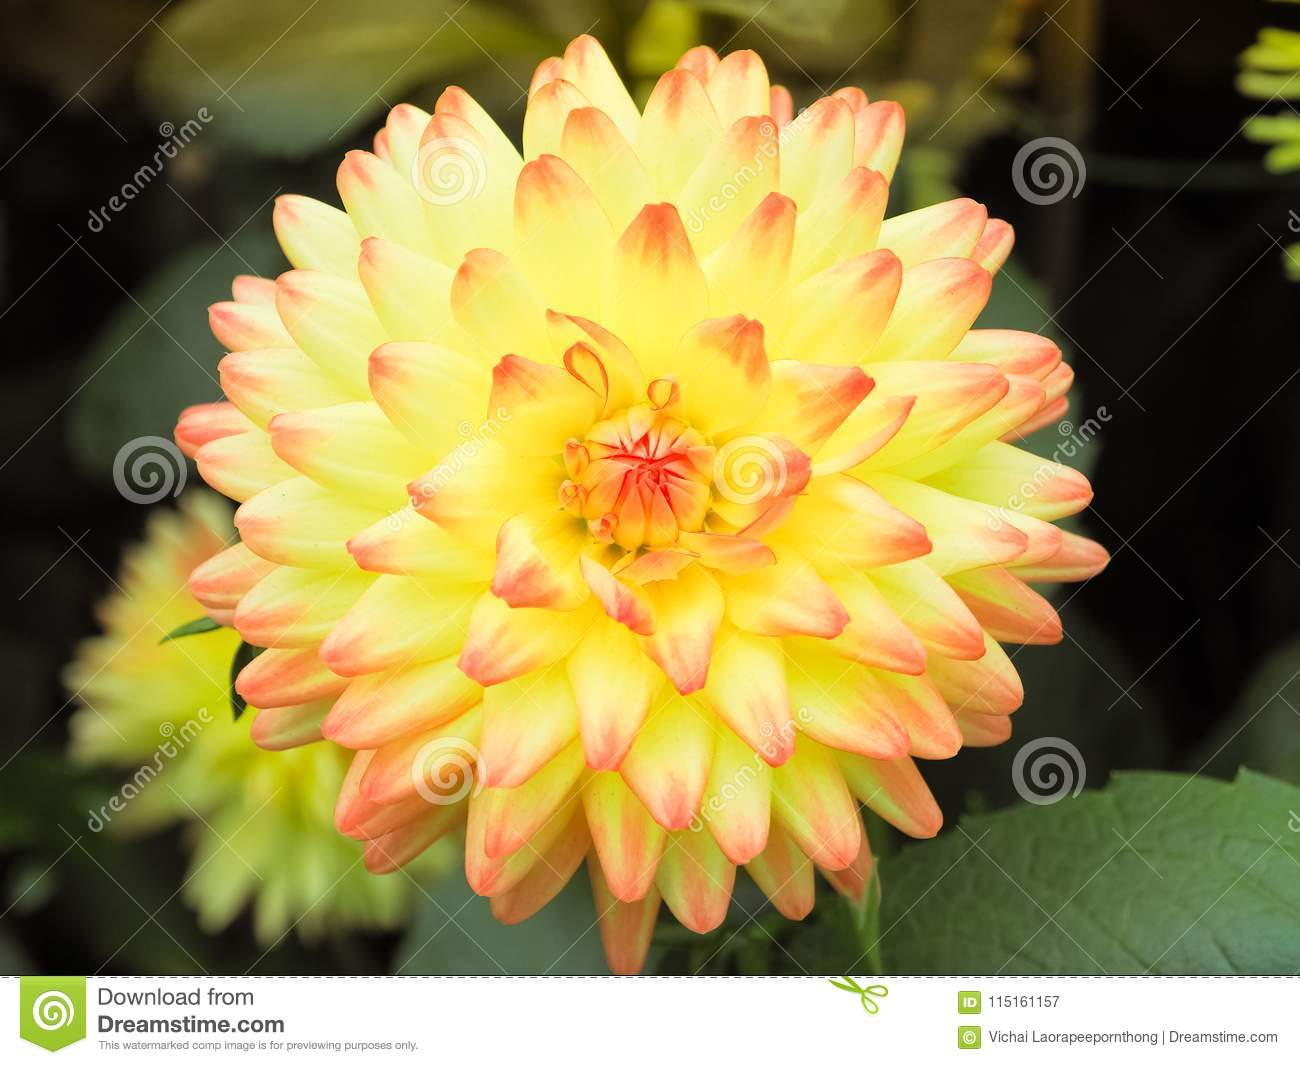 Beautiful yellow dahlia flower in garden stock image image of beautiful yellow dahlia flower in garden izmirmasajfo